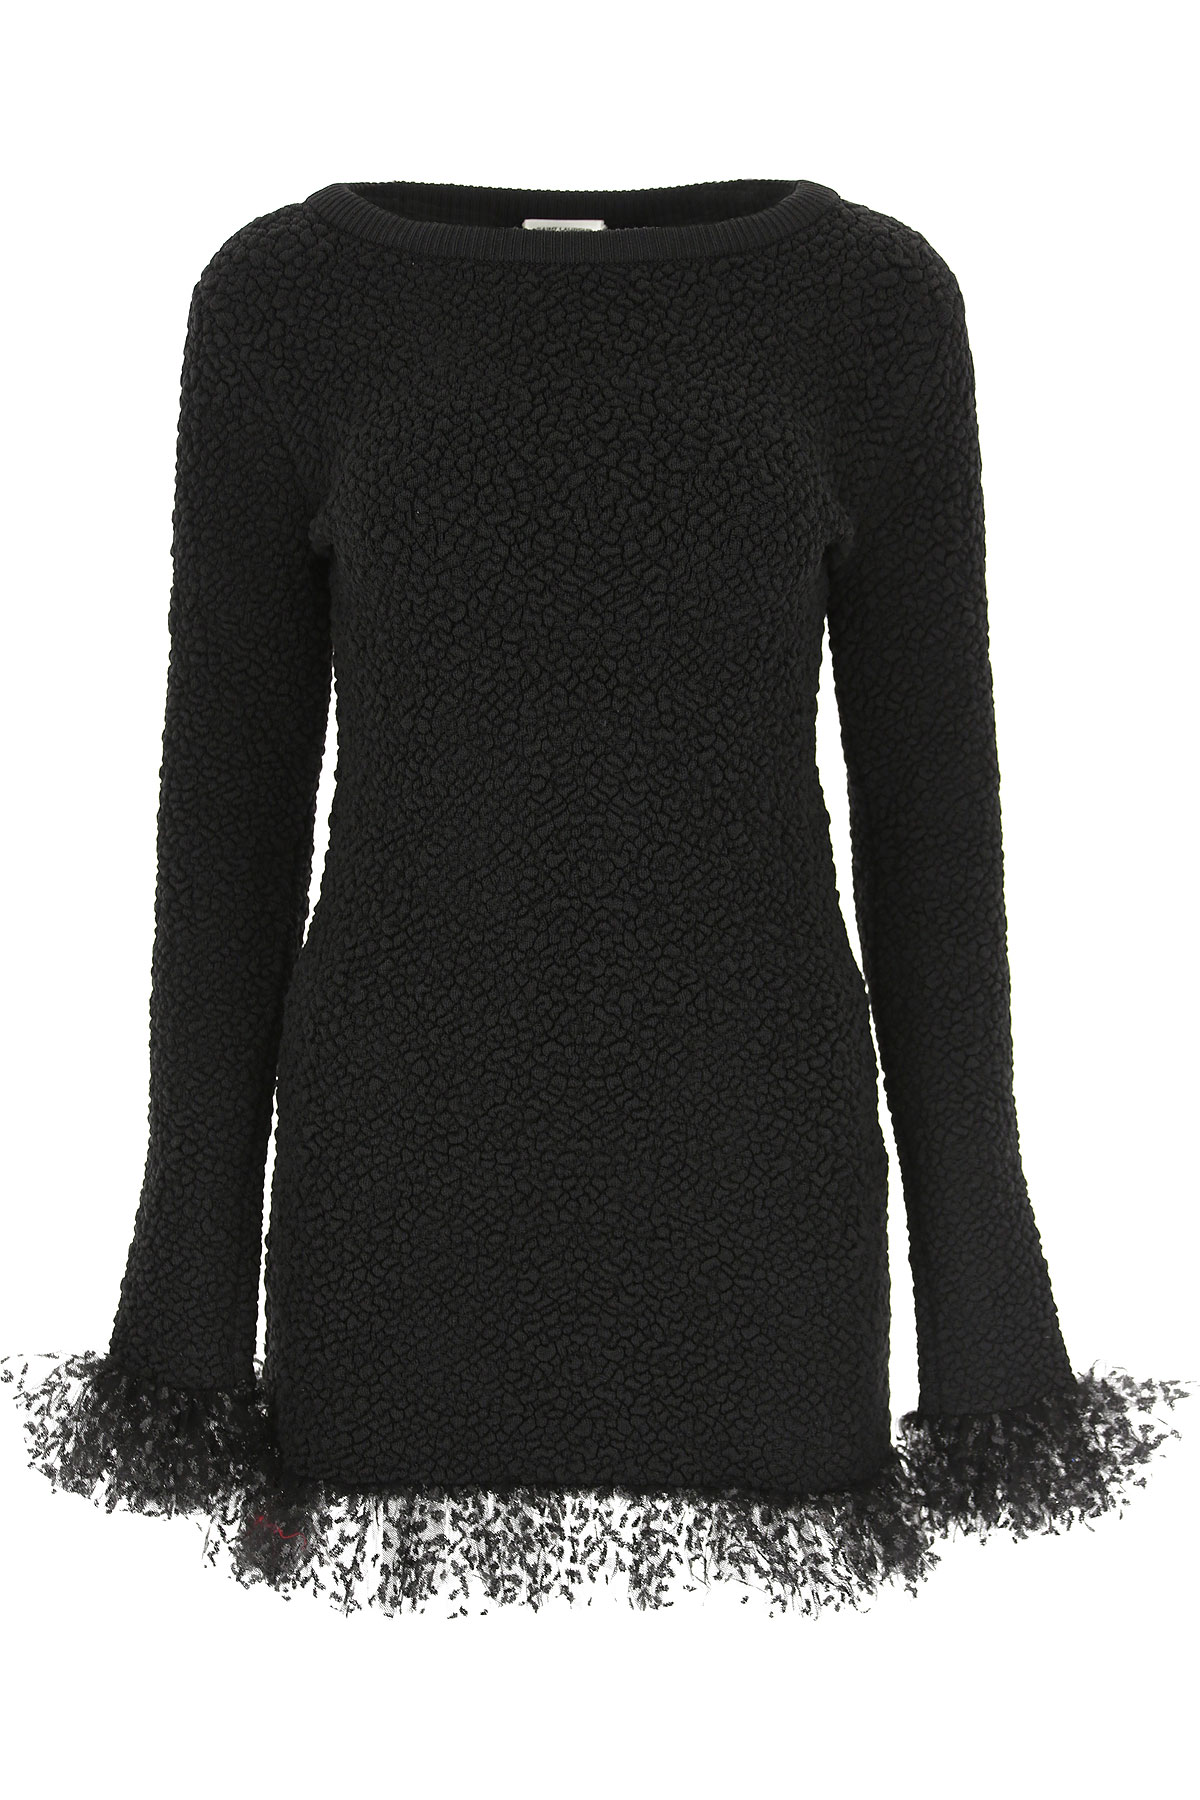 Yves Saint Laurent Dress for Women, Evening Cocktail Party On Sale, Black, Silk, 2019, 4 6